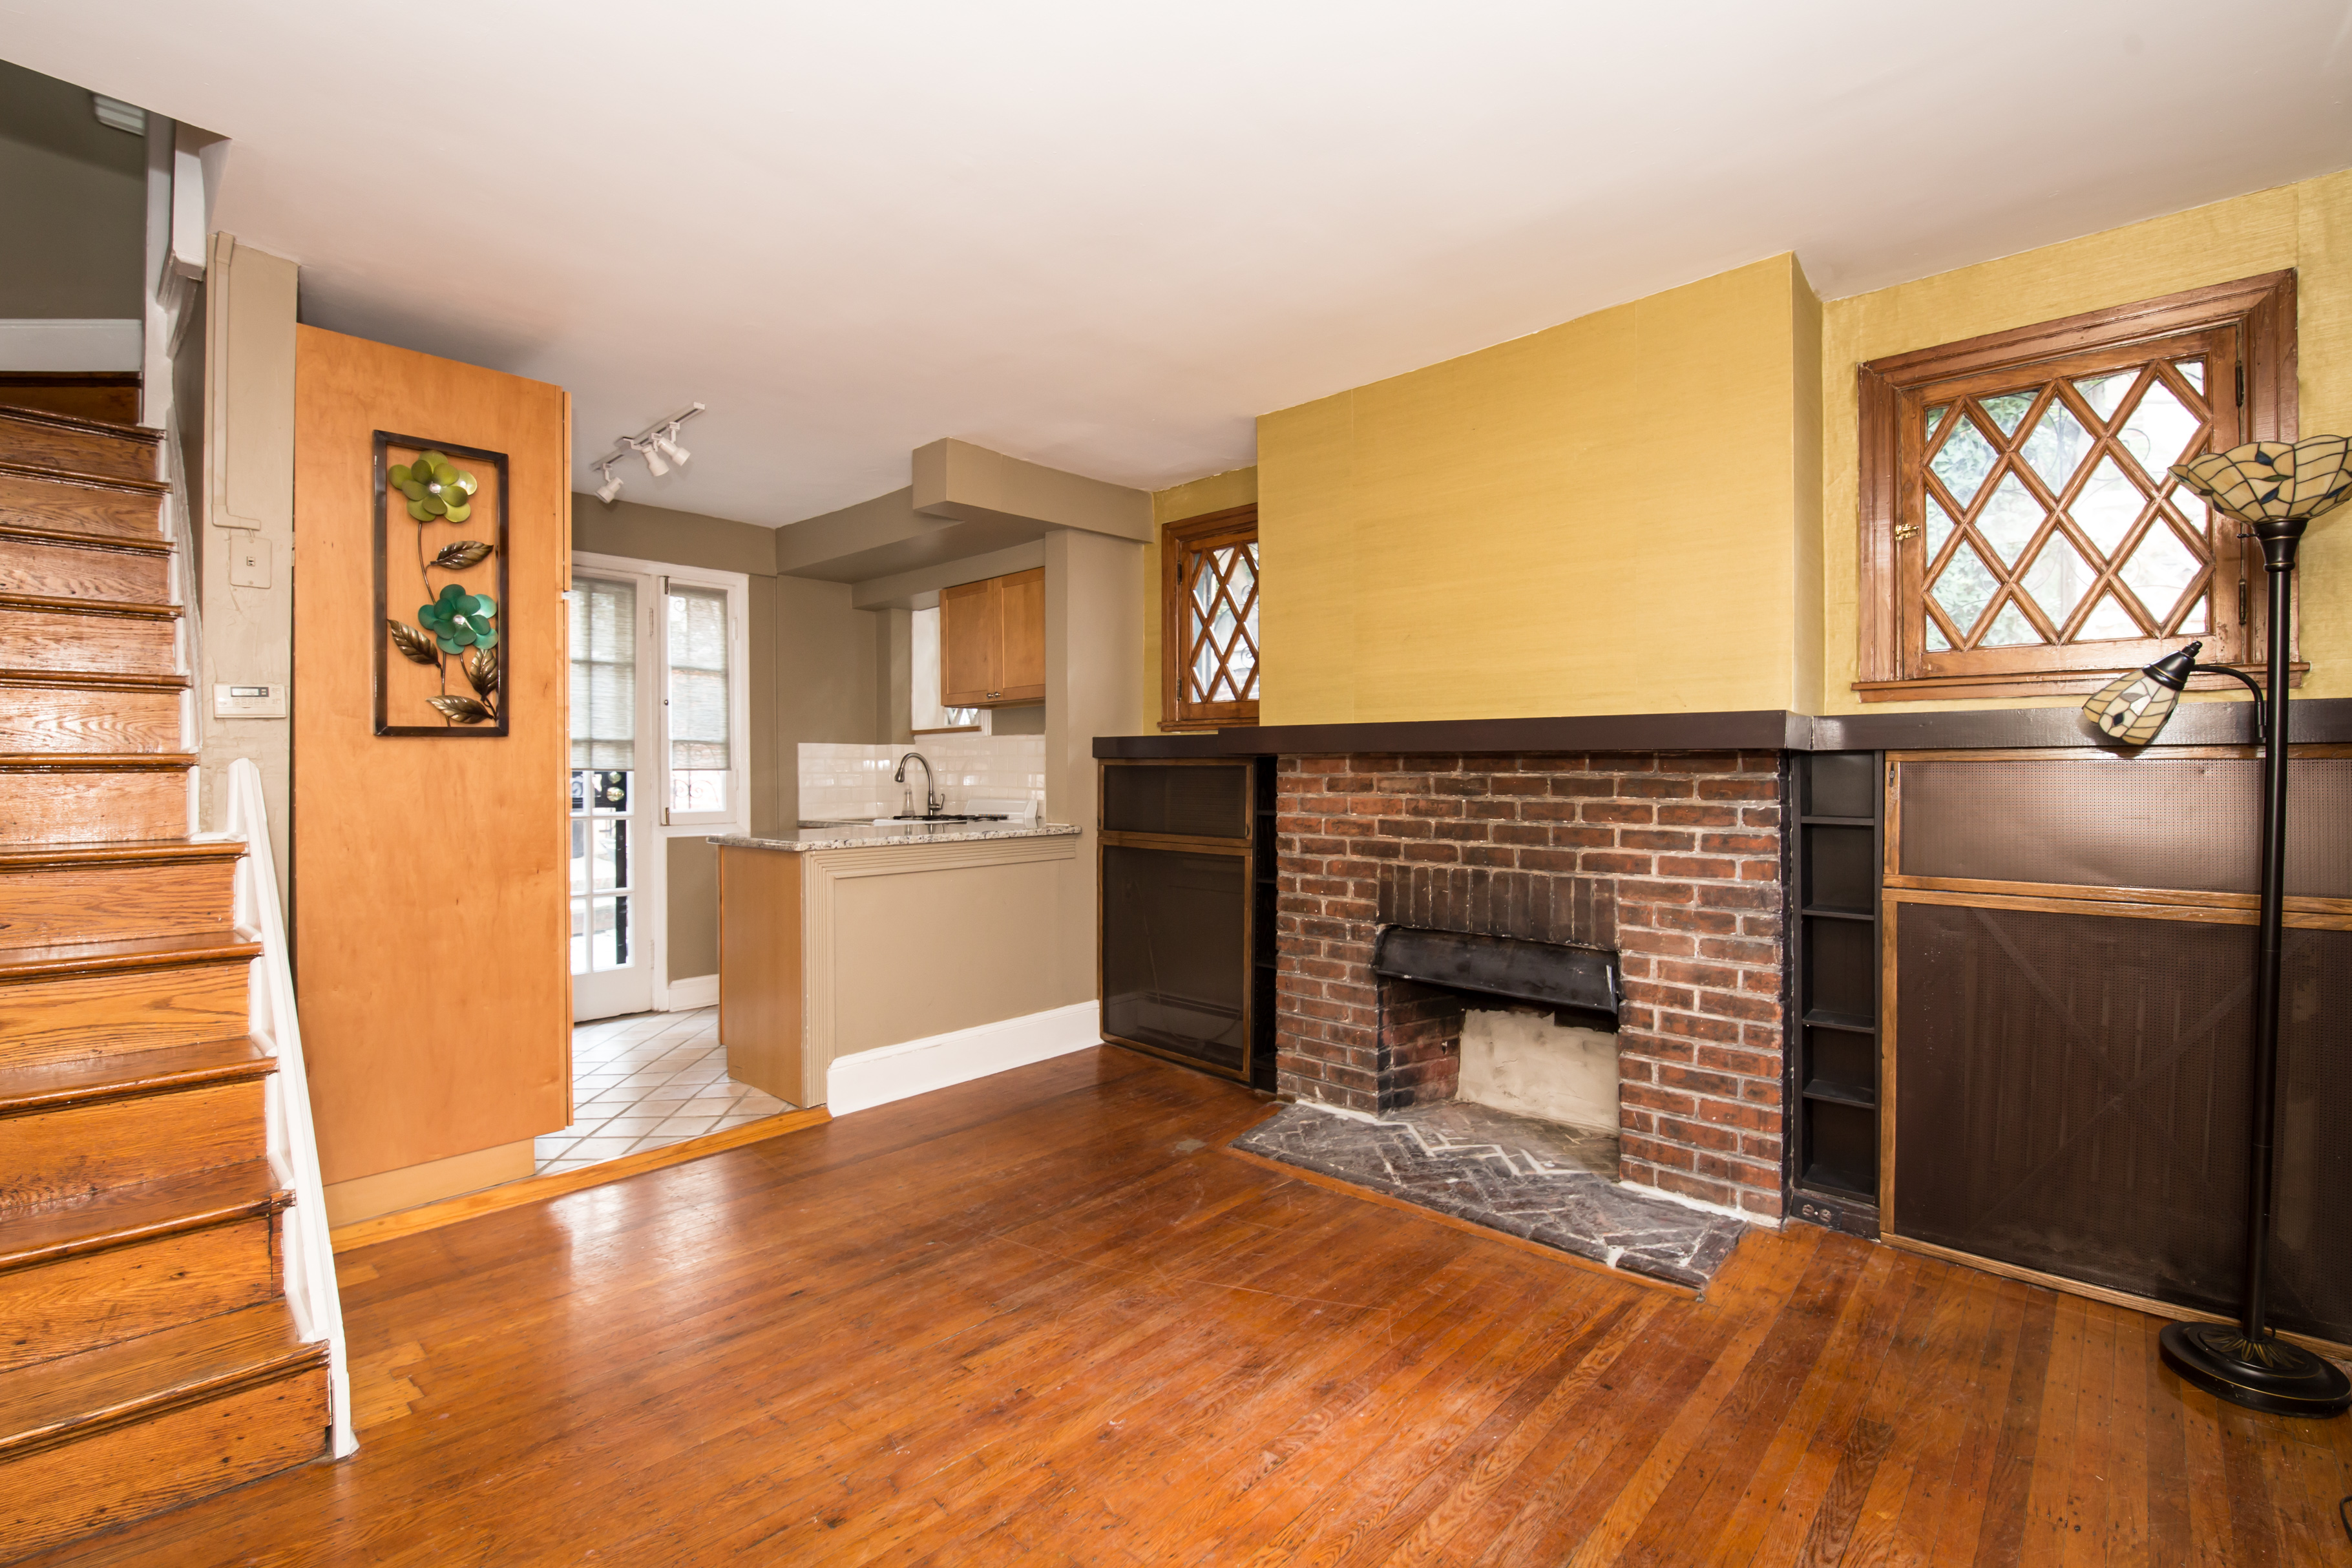 small home tucked away in rittenhouse square asks 395k curbed